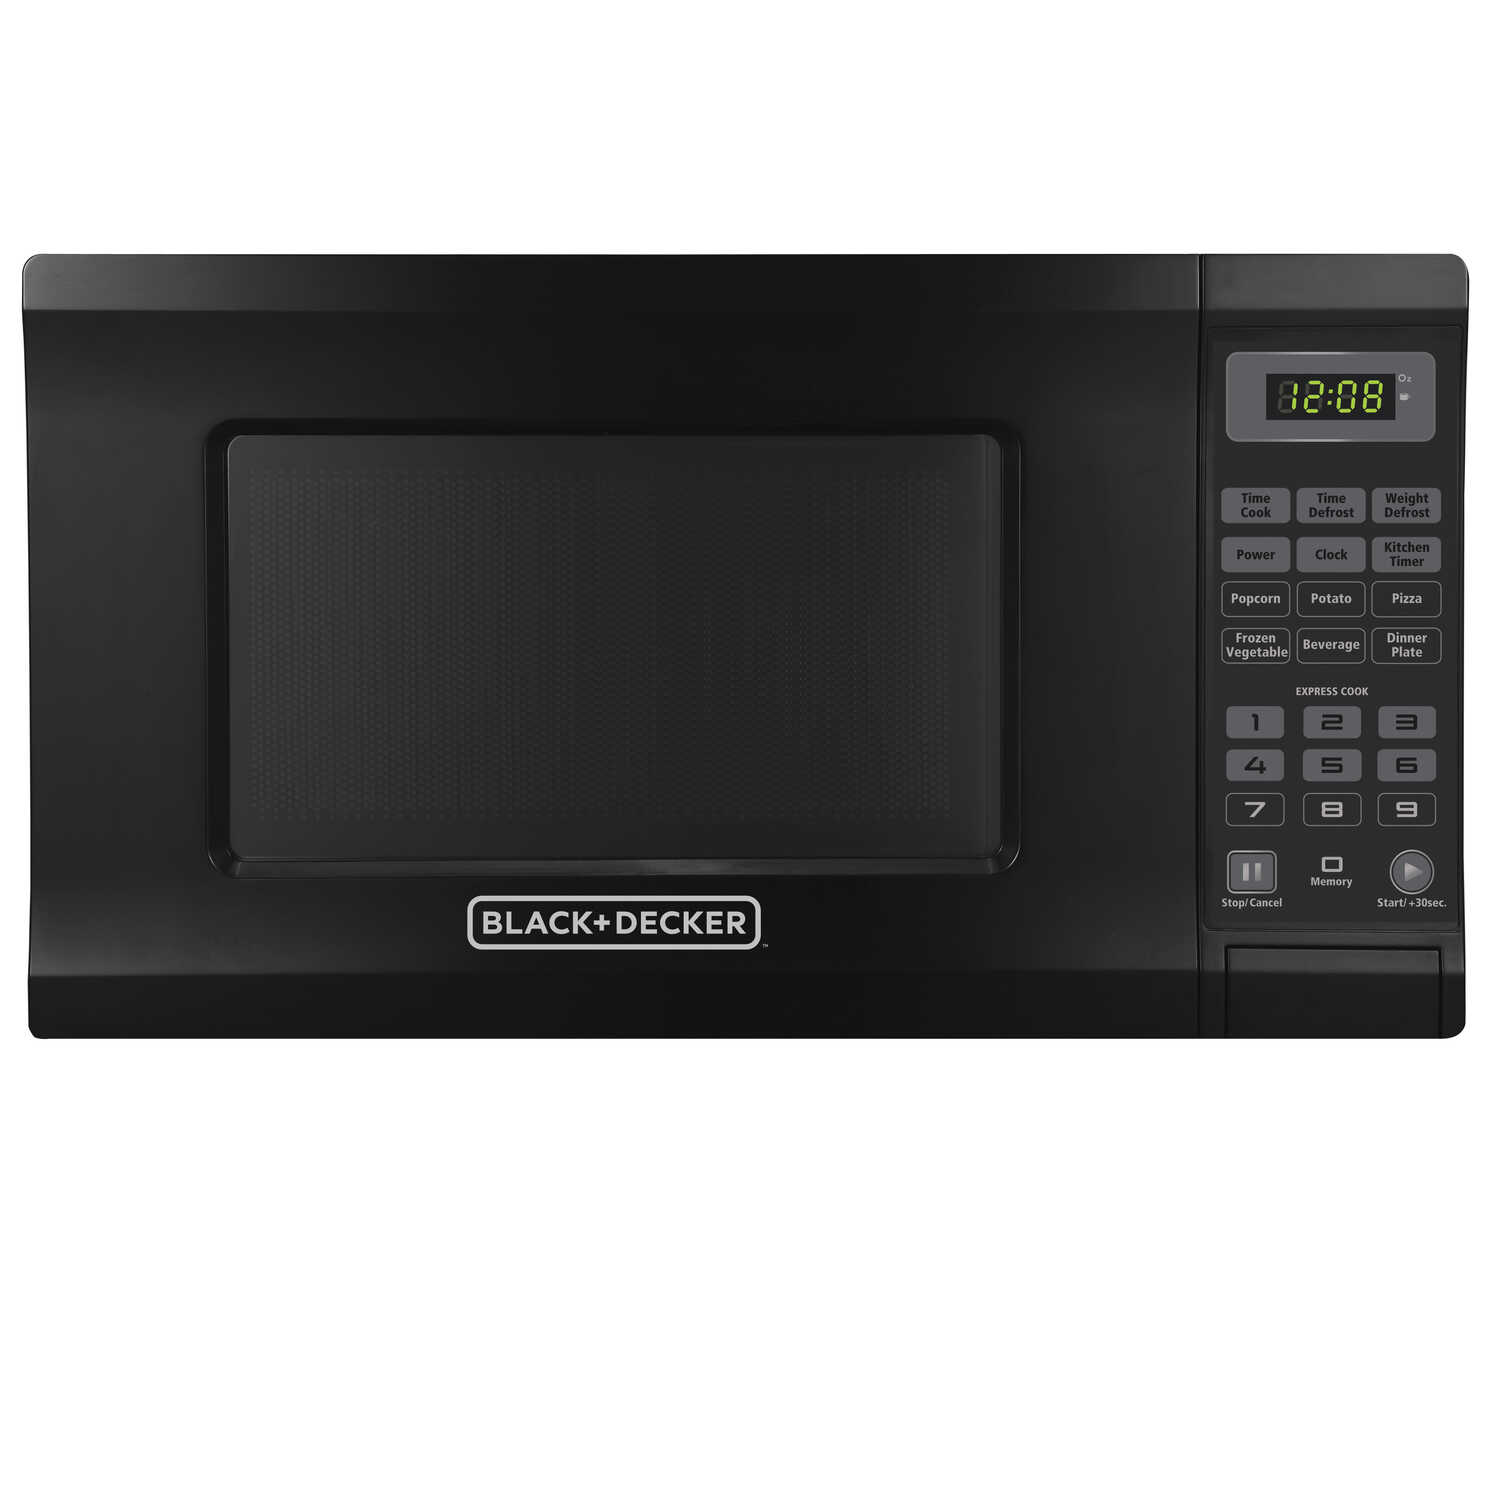 Black and Decker  0.7 cu. ft. Black  700 watts Microwave